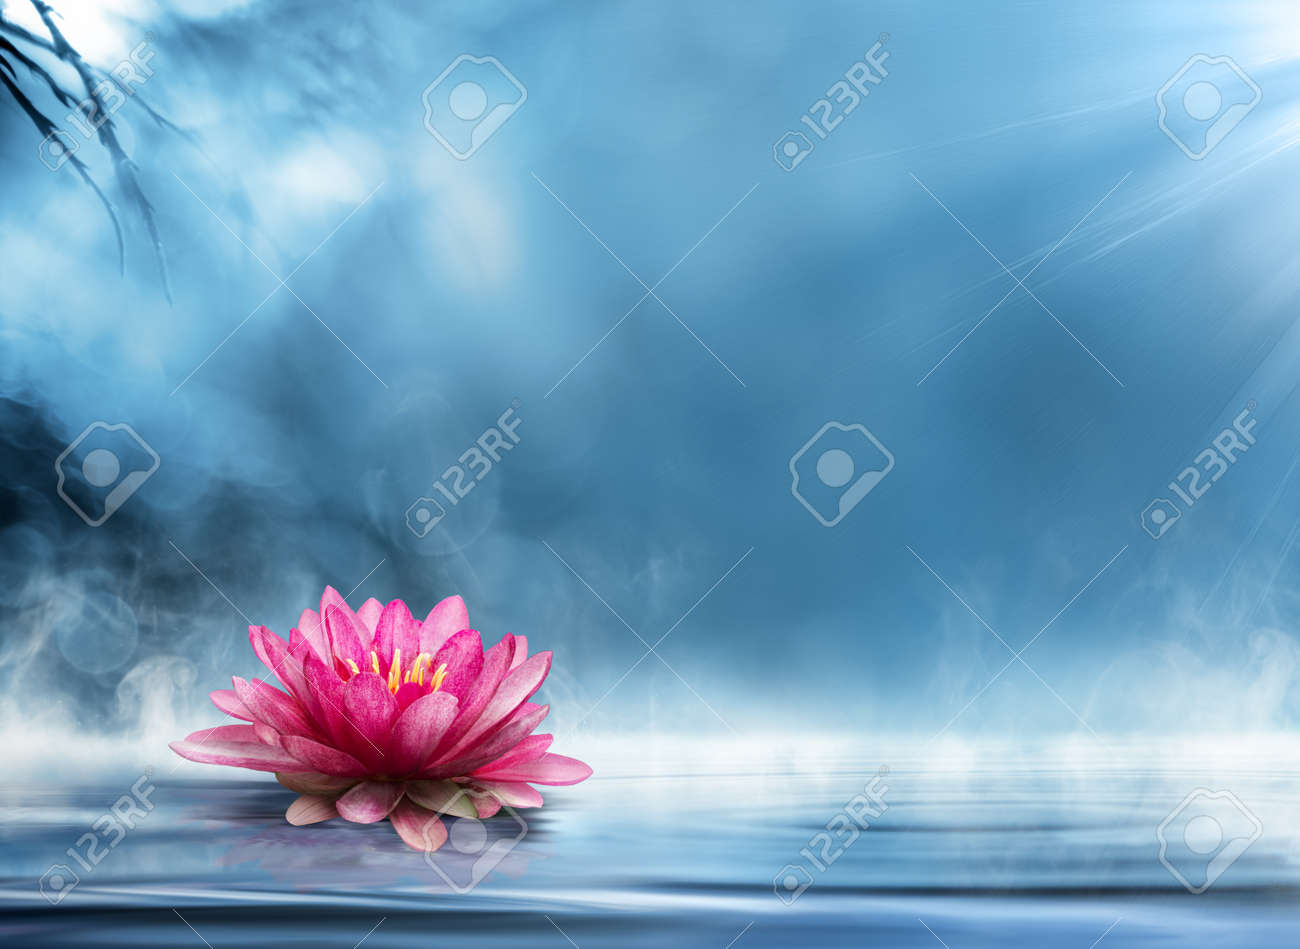 spirituality zen in peaceful scenery stock photo picture and